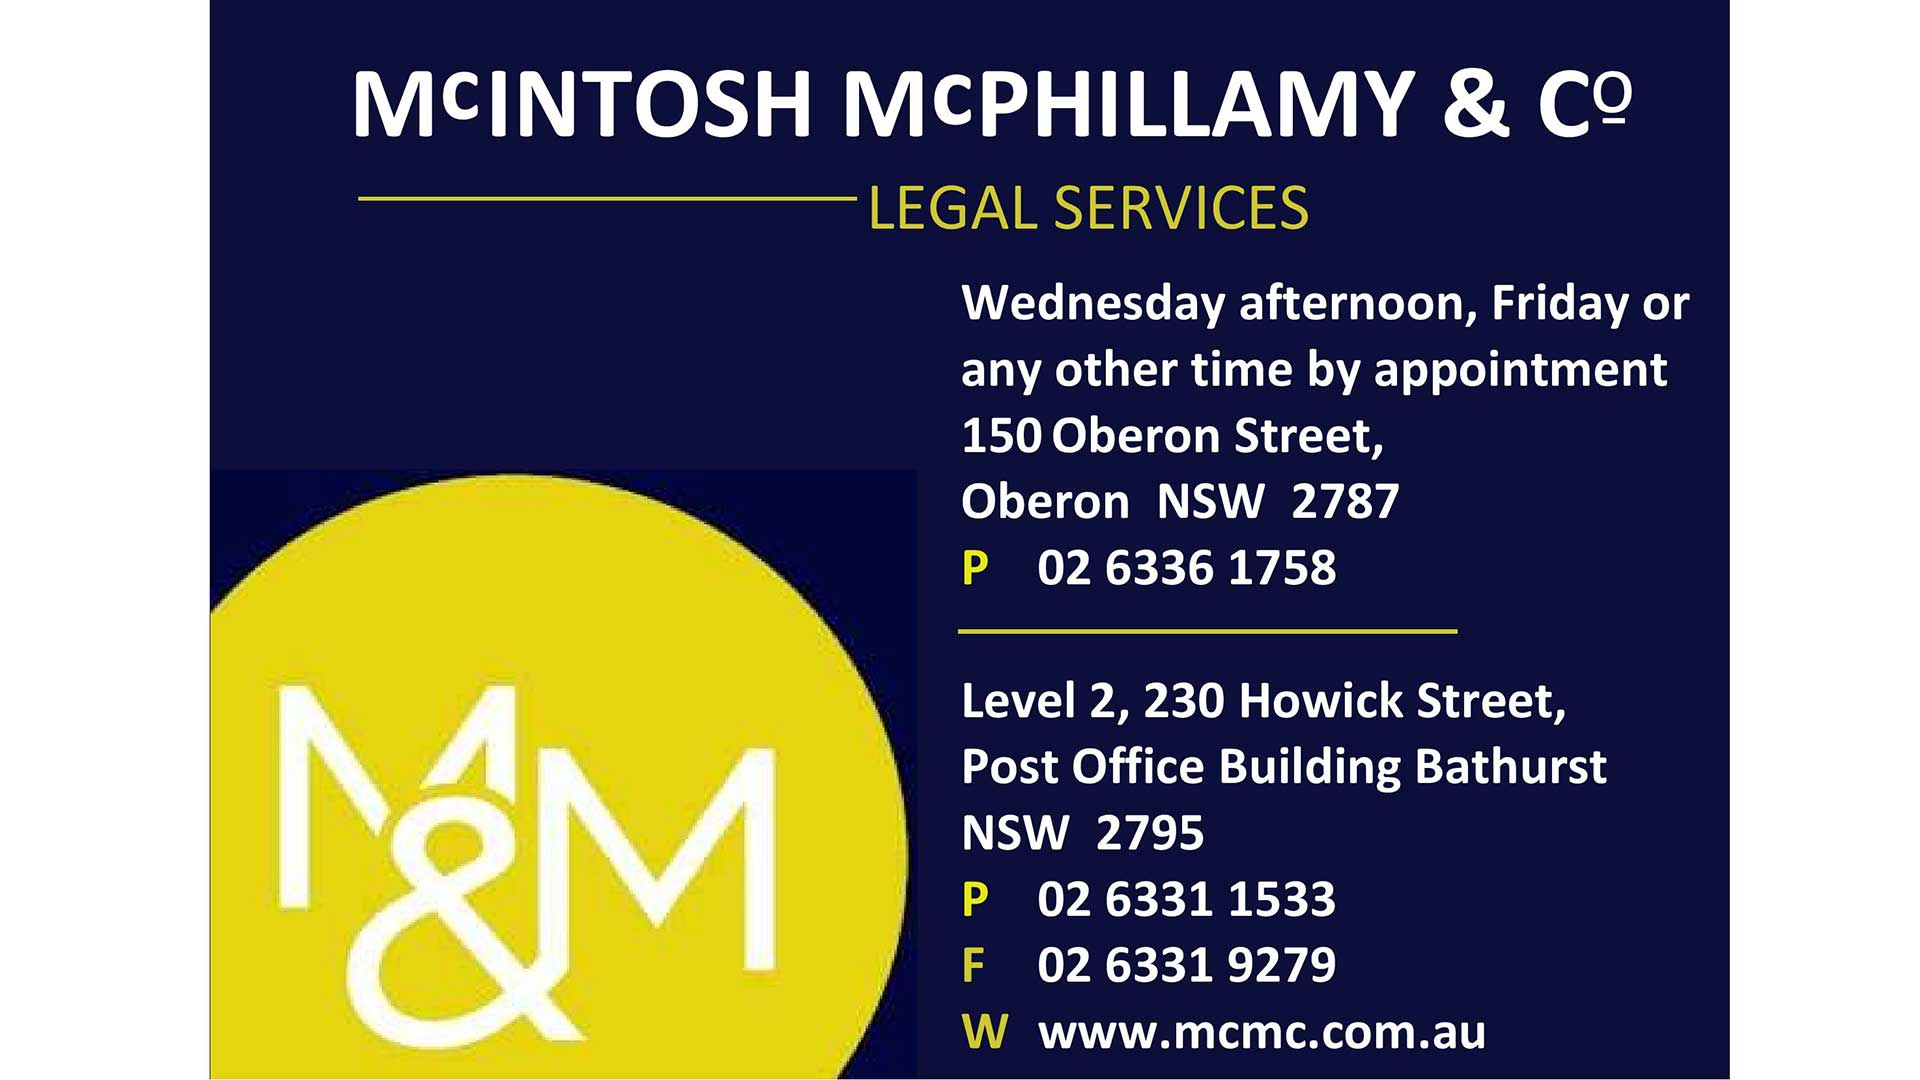 Business - Mcintosh Mcphillamy & Co Legal Services | Visit Oberon